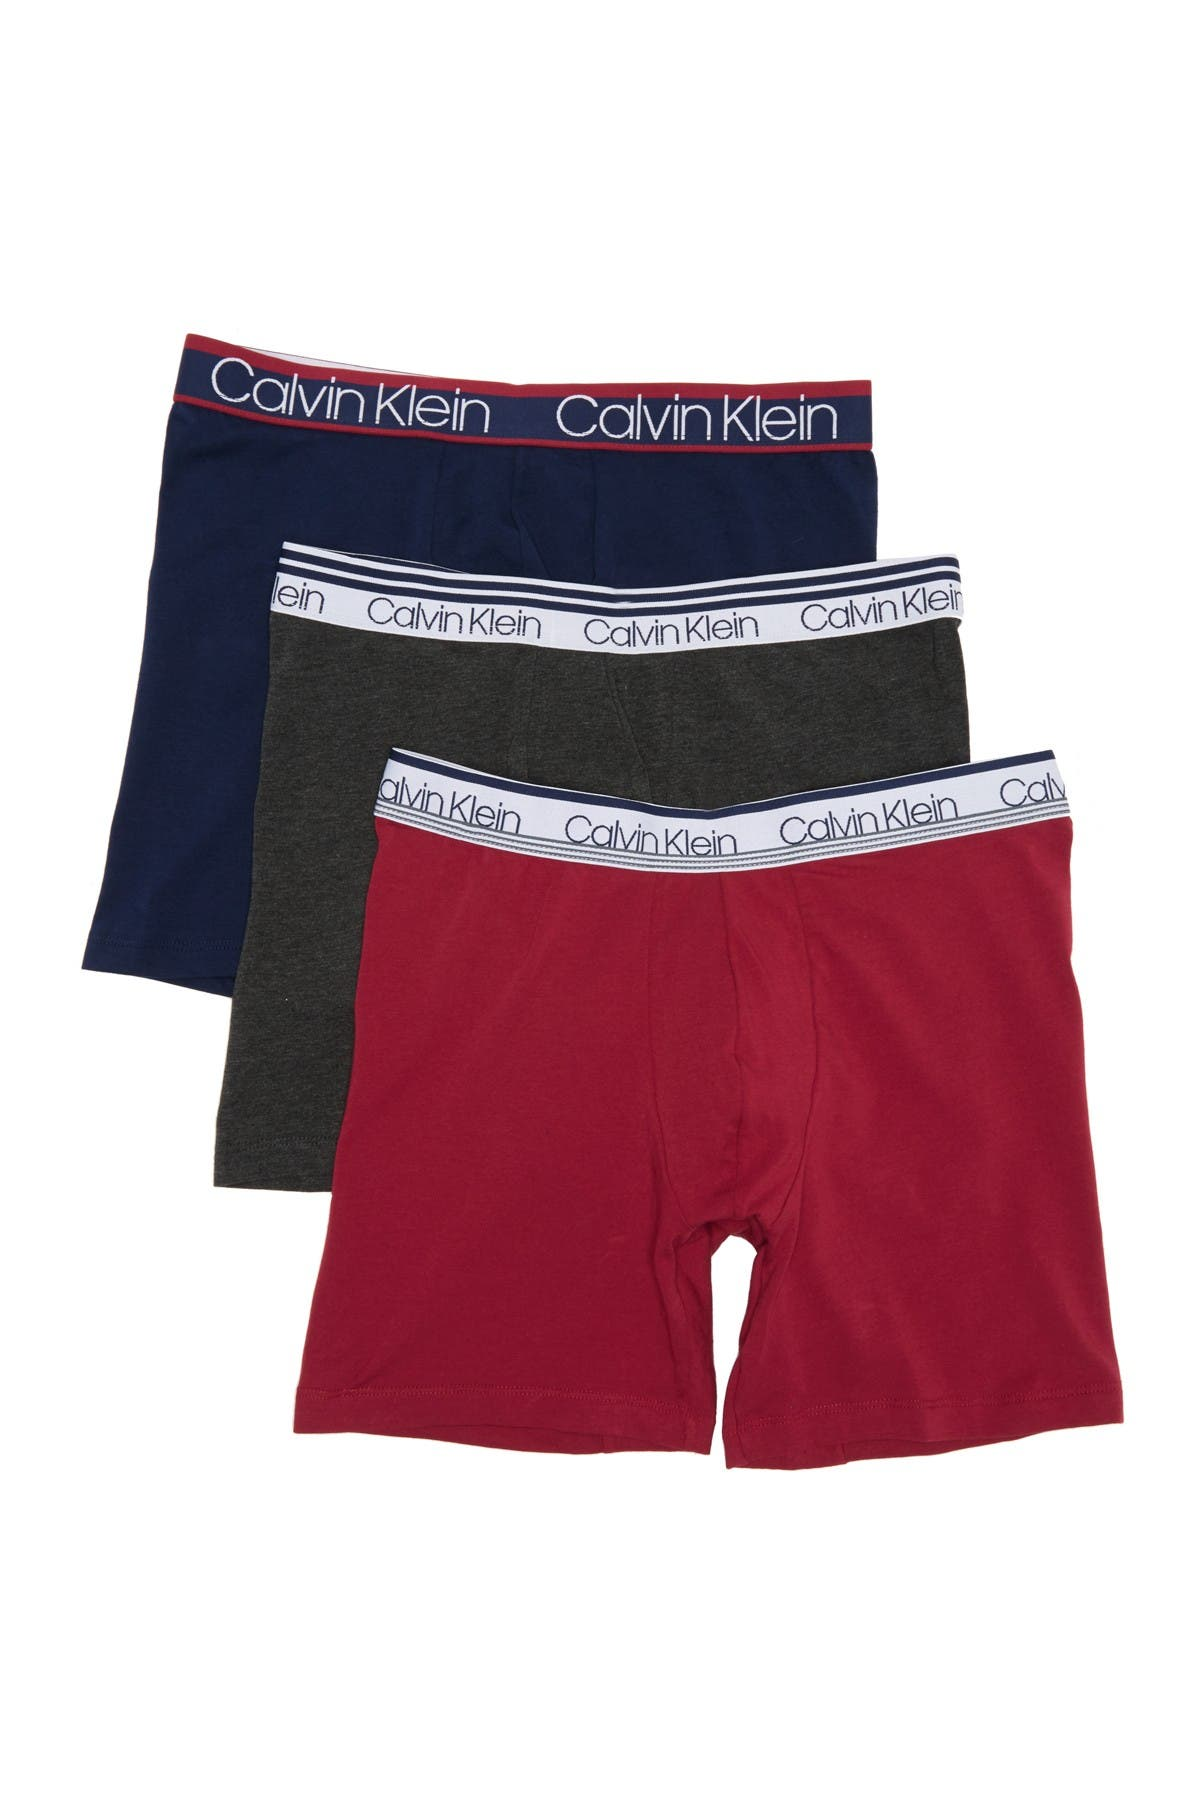 Image of Calvin Klein Boxer Briefs - Pack of 3